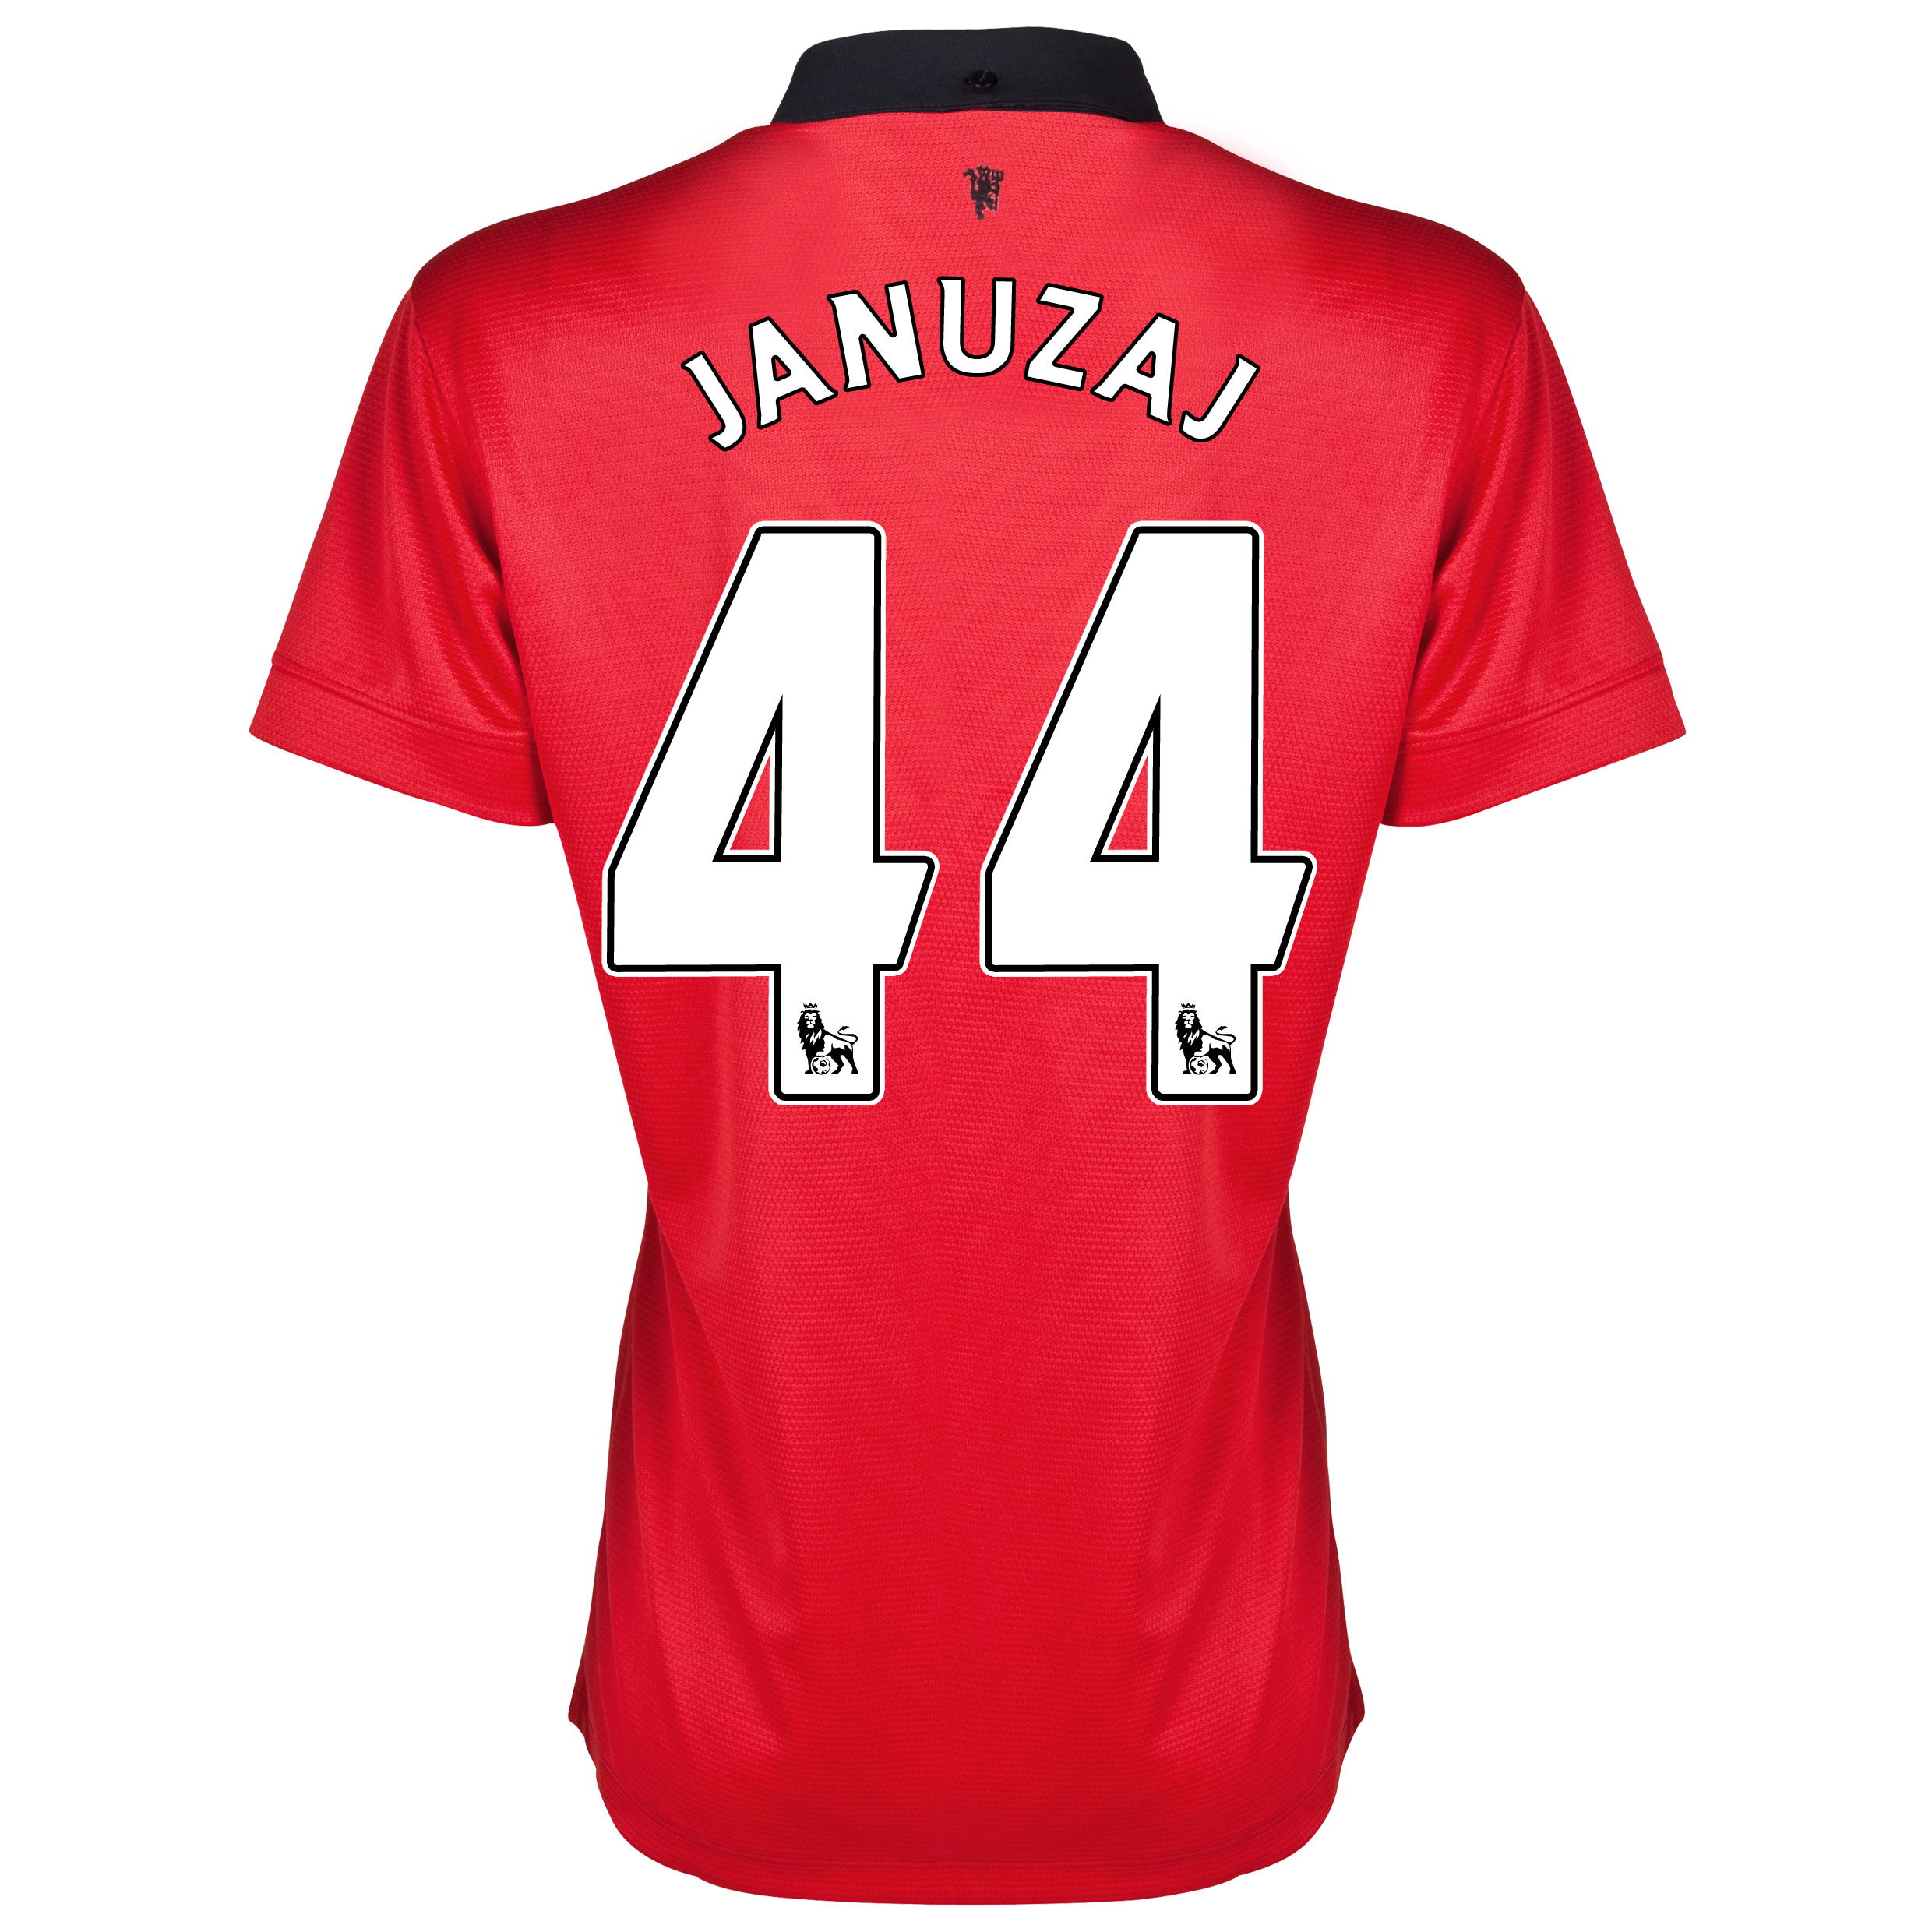 Manchester United Home Shirt 2013/14 - Womens with Januzaj 44 printing